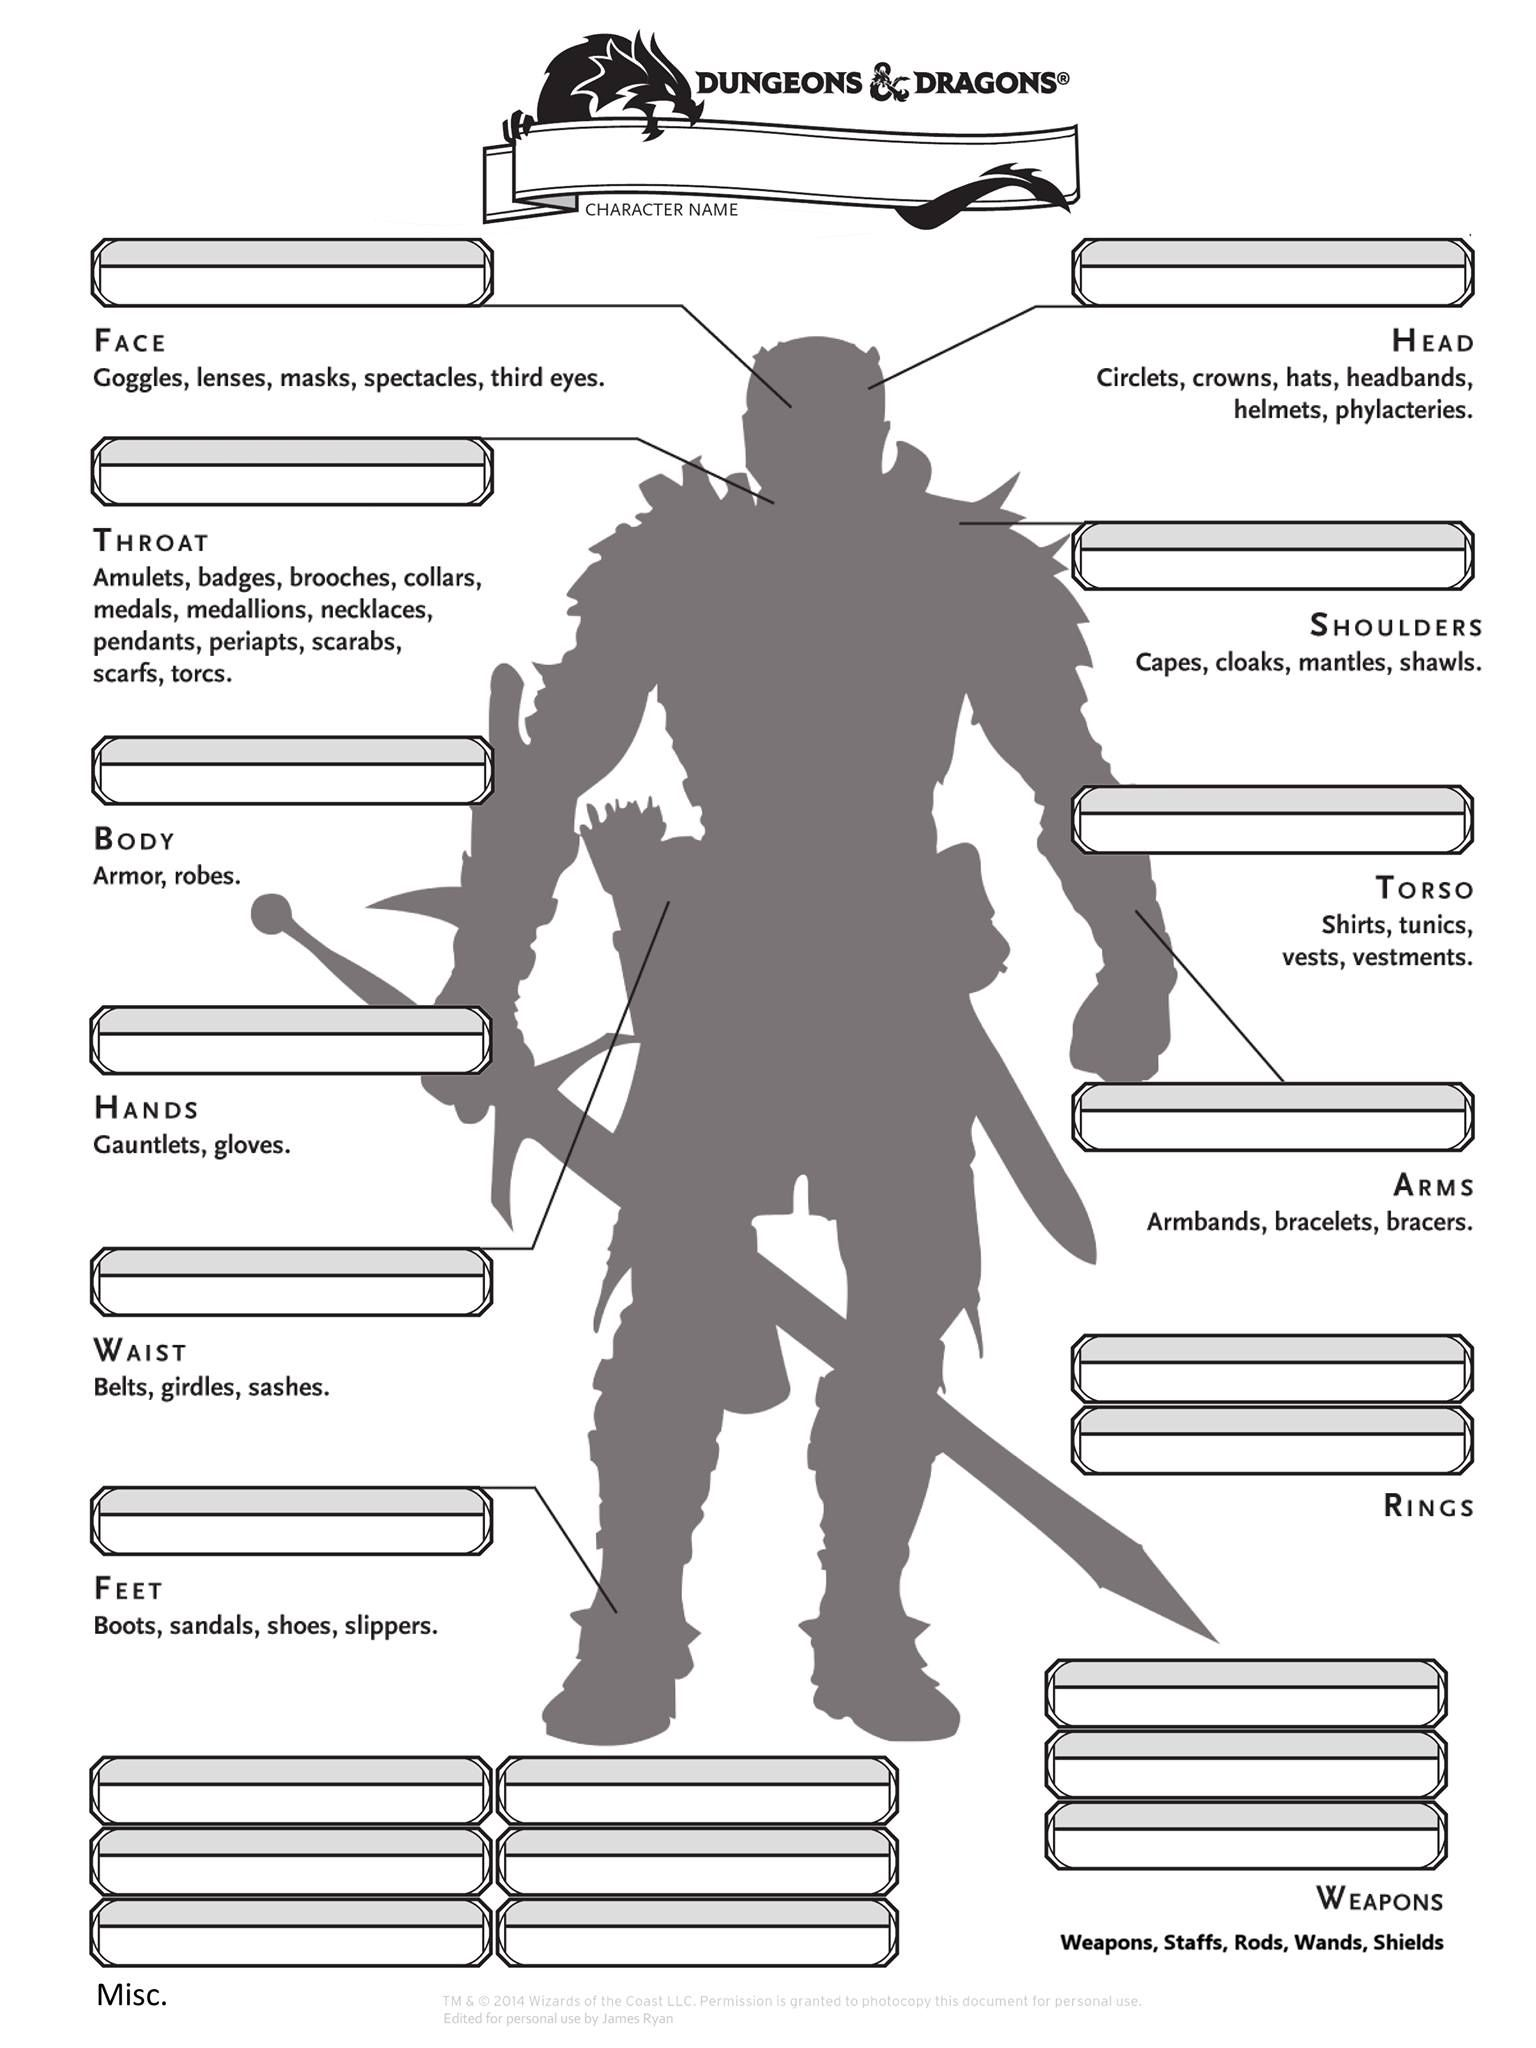 D&D 5e Alternate Inventory Page from epiclevelgaming.com